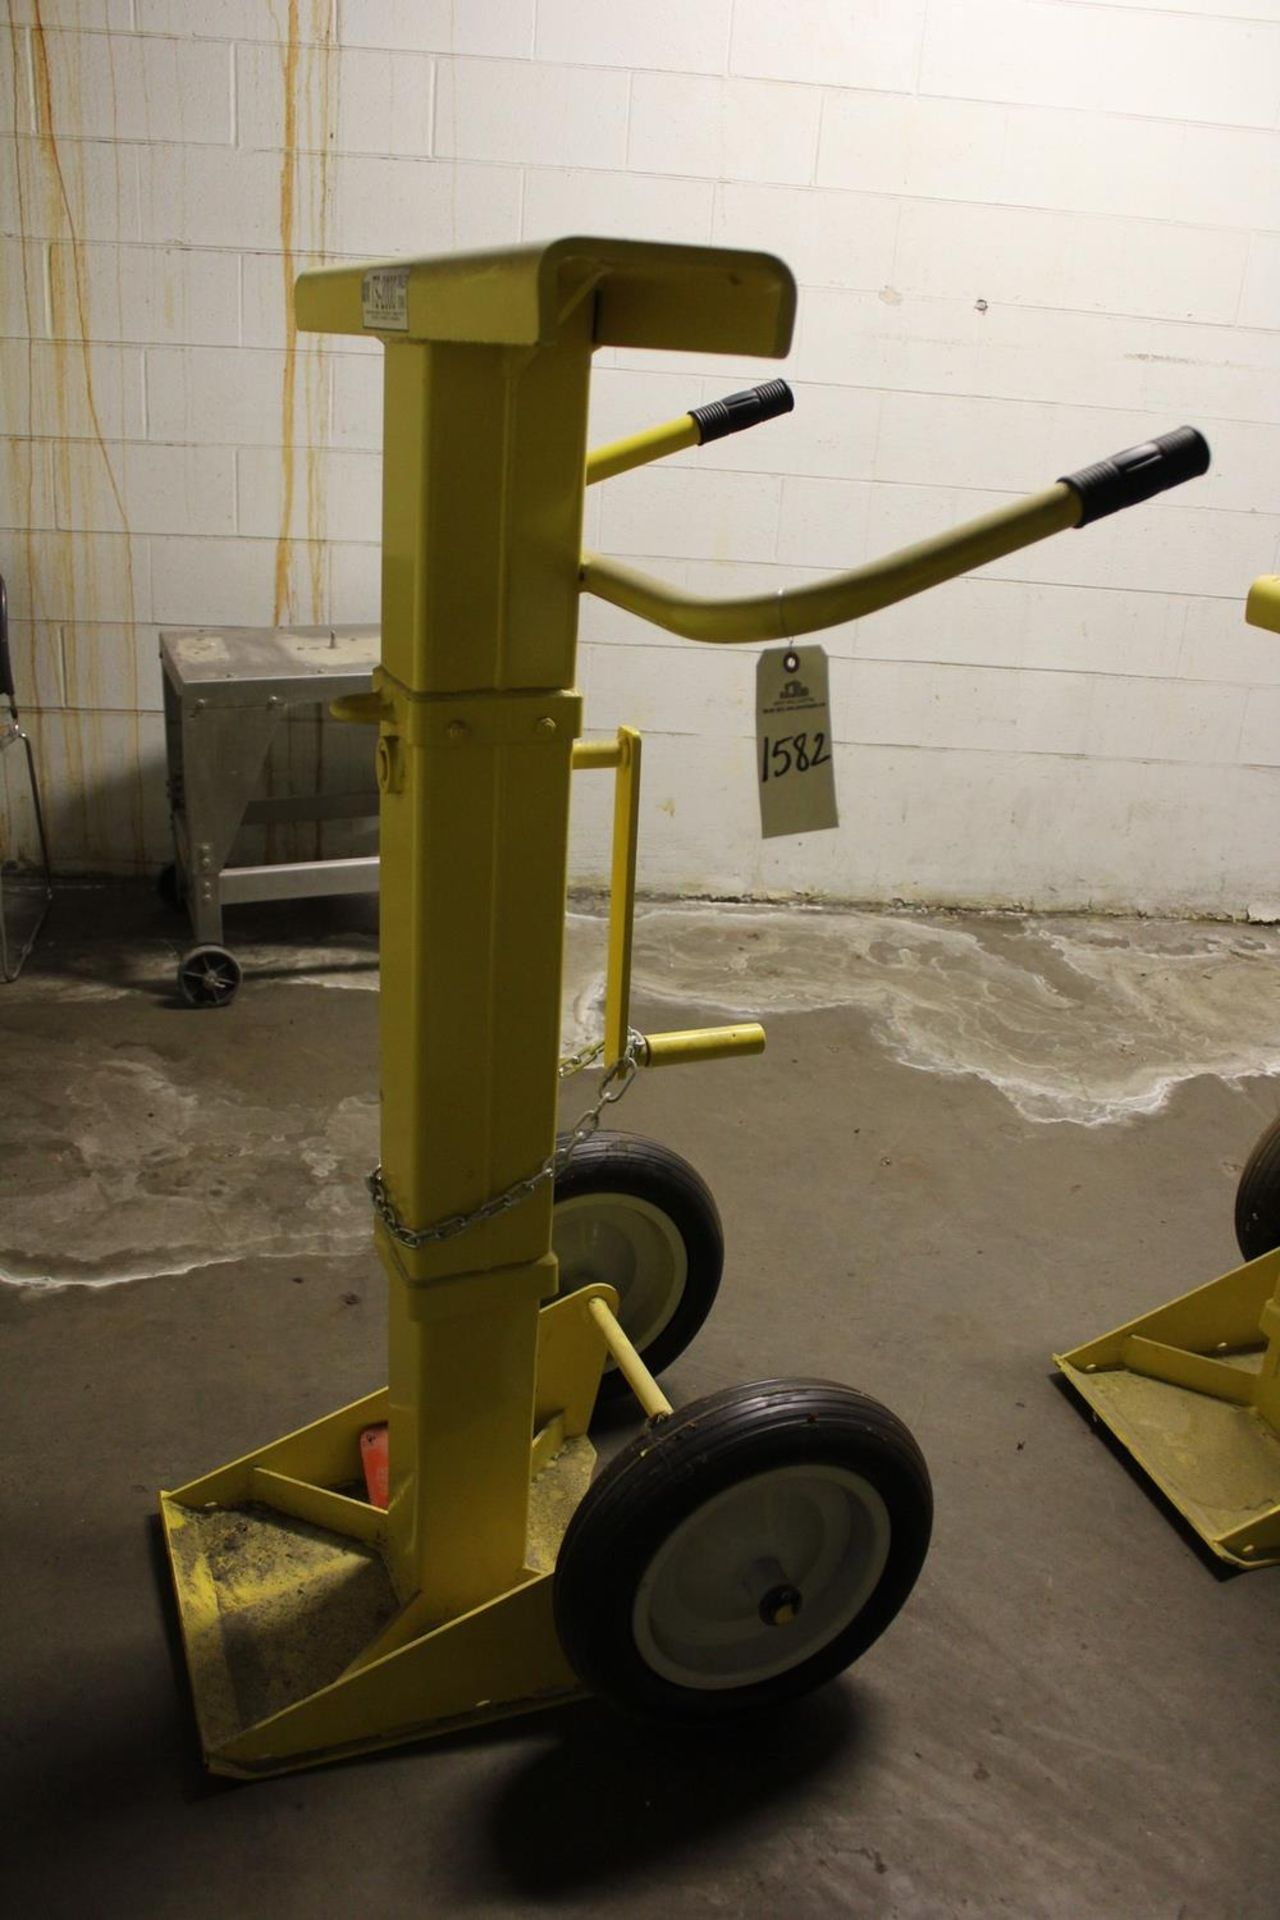 Lot 1582 - Rite Hite TS-2000 Trailer Stand - Subject to Bulk Bid Lot 15 | Rig Fee: Hand Carry or Contact Rigger